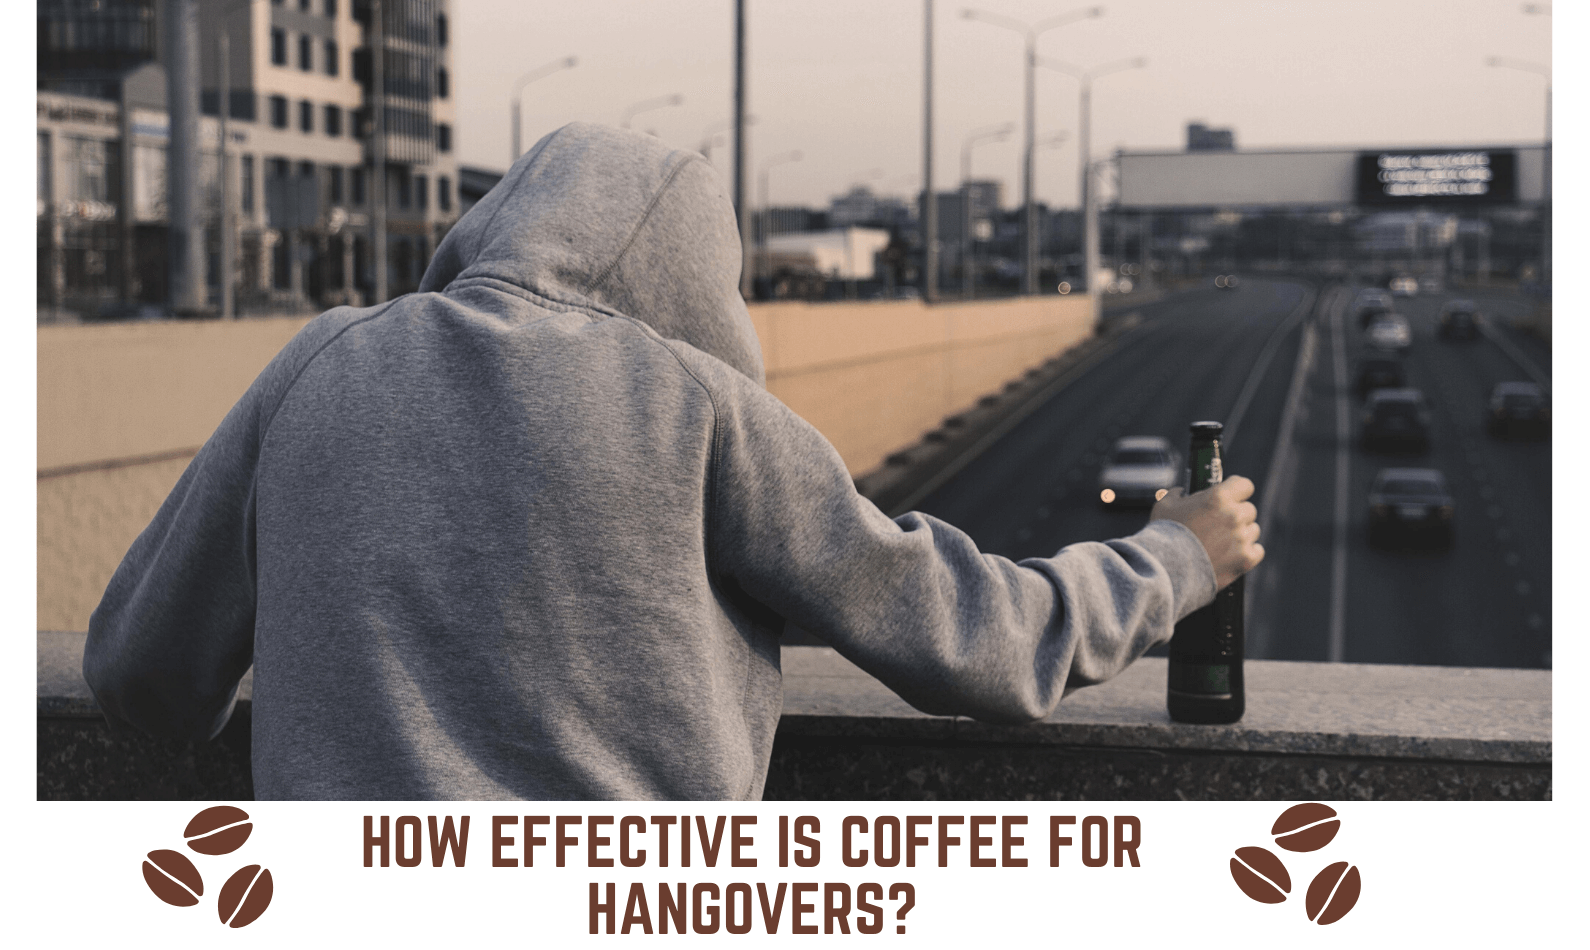 How Effective is Coffee for Hangovers